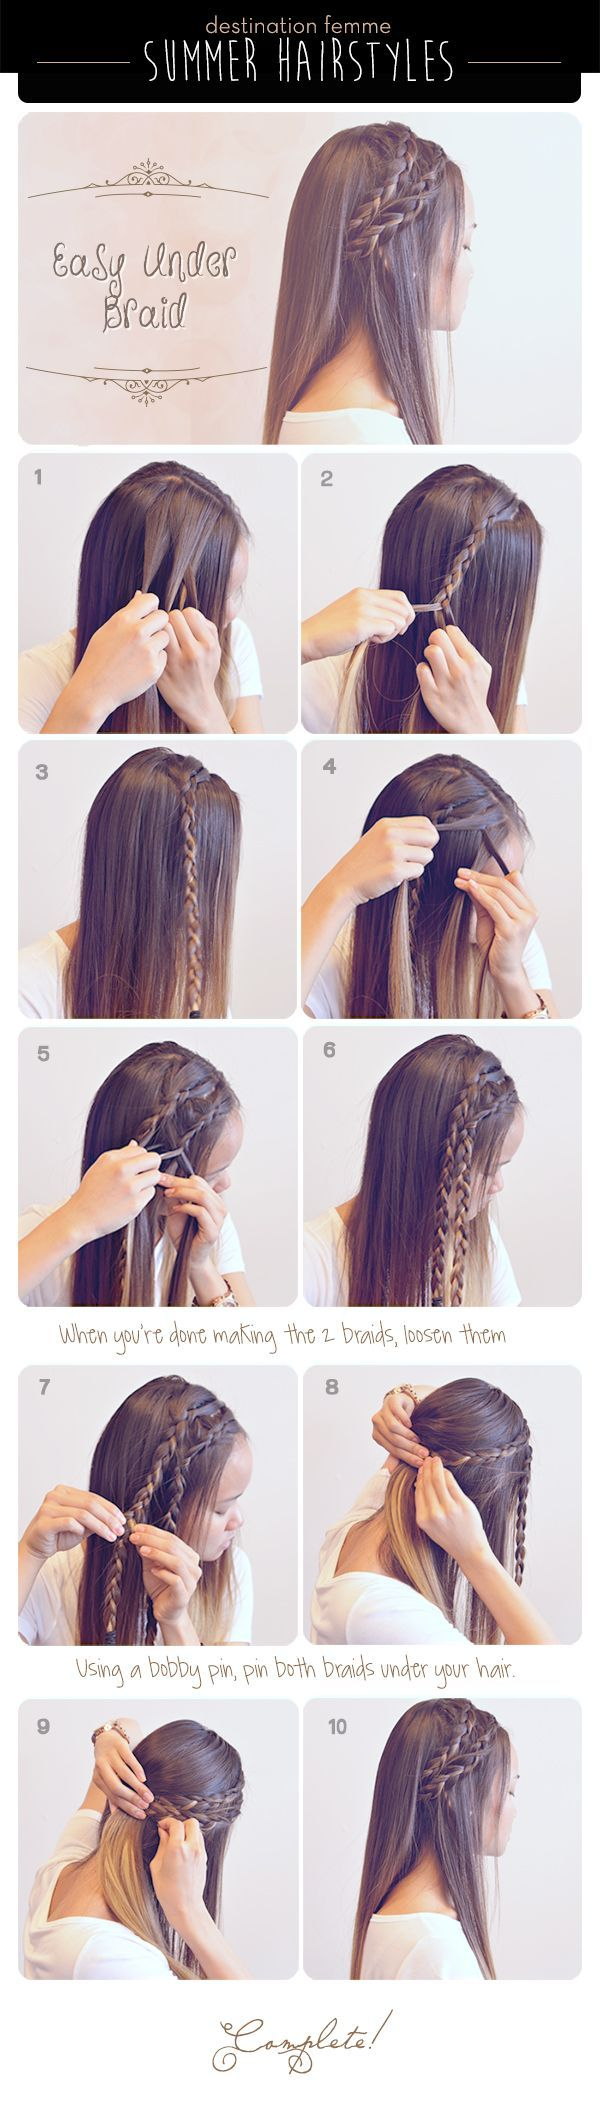 easy hairstyle tutorials for all occasions tutorials st and